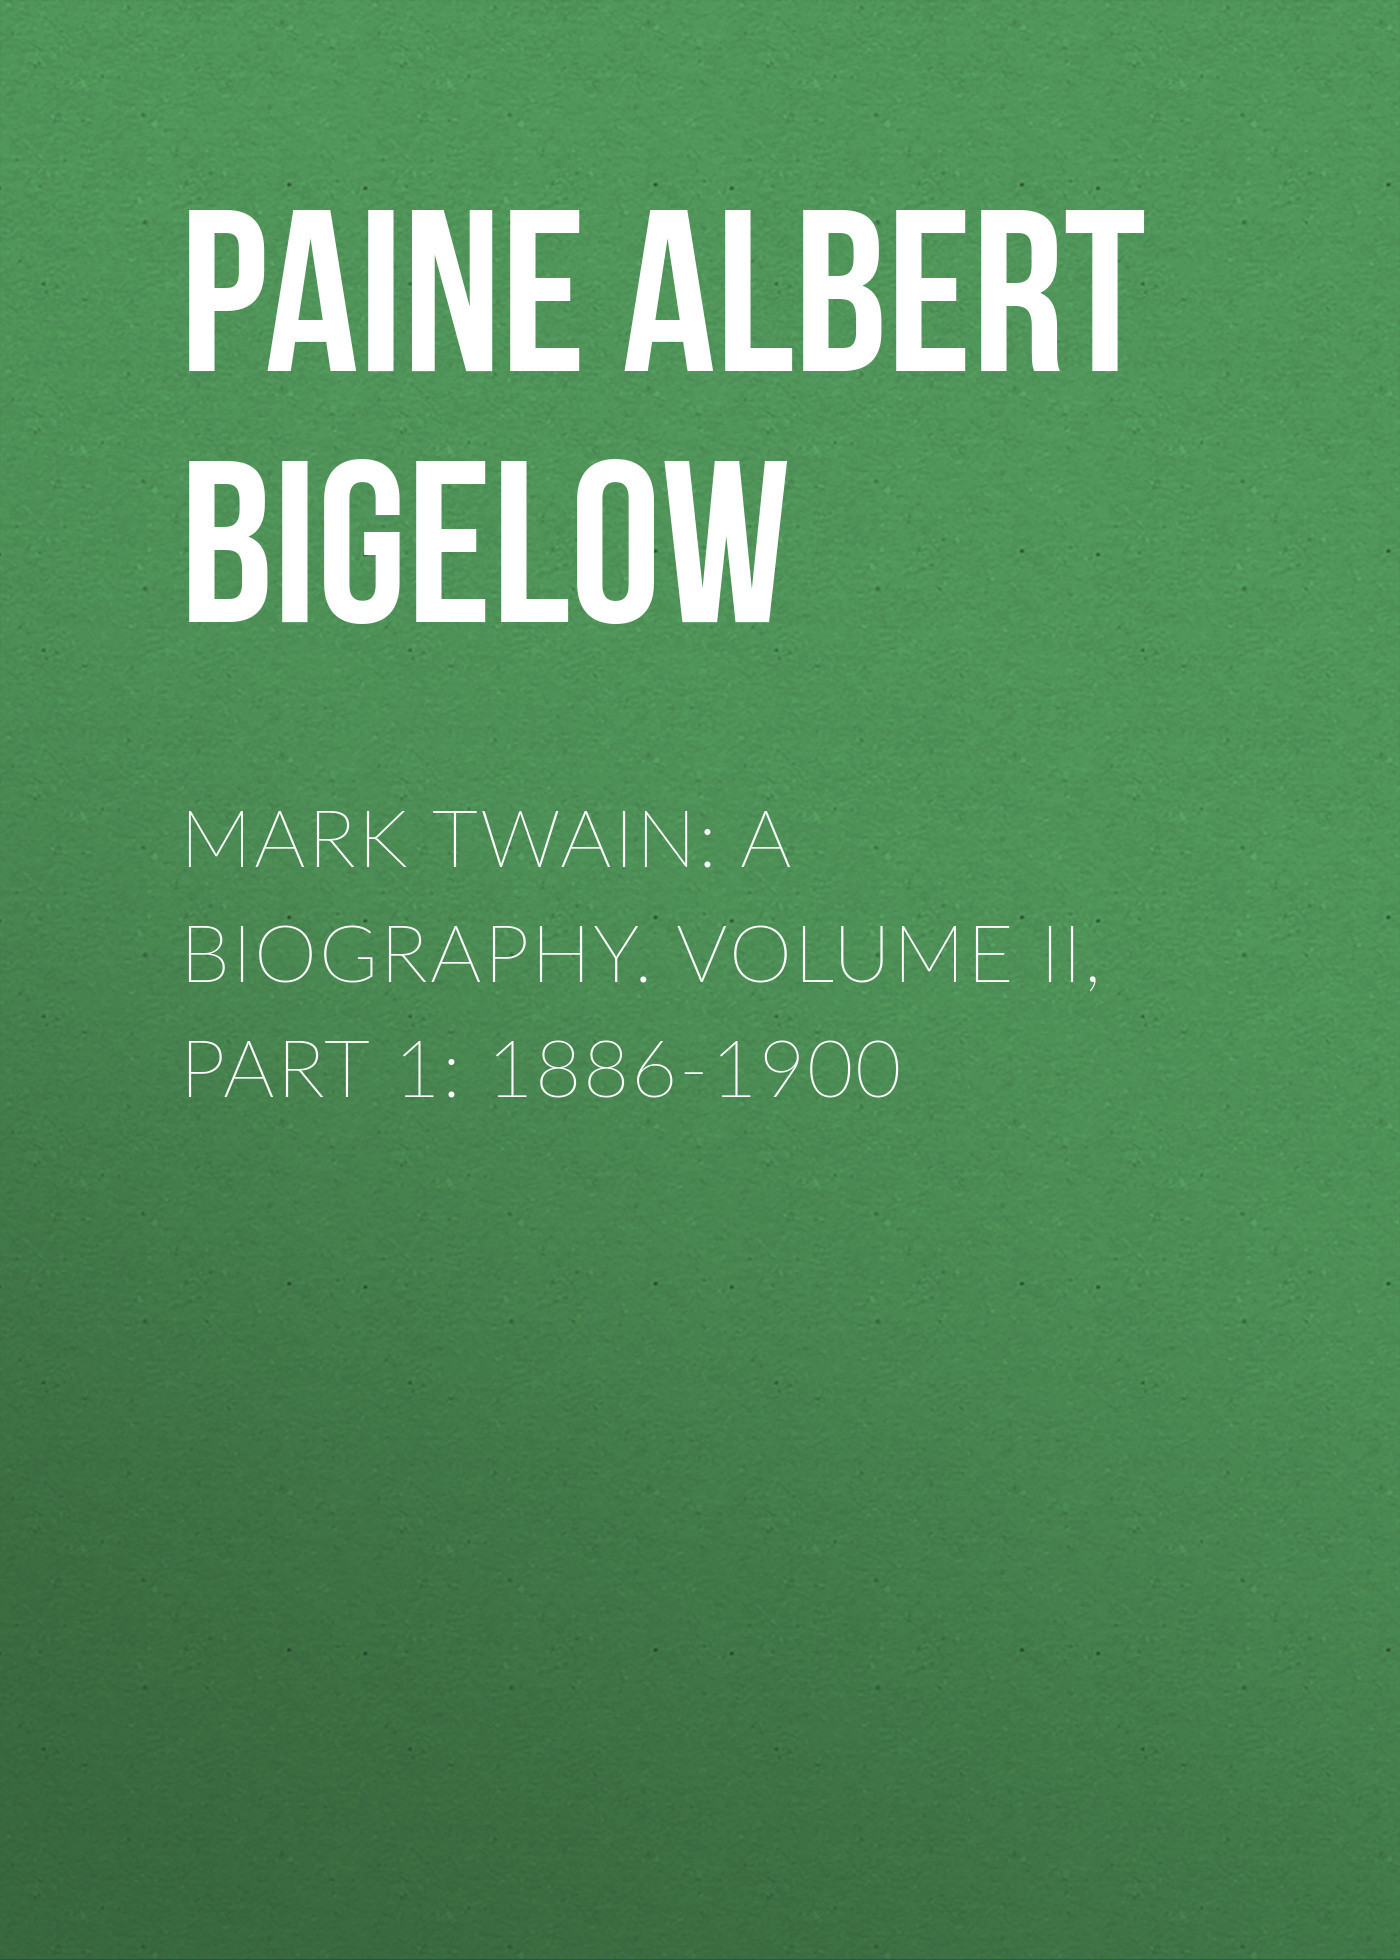 Paine Albert Bigelow Mark Twain: A Biography. Volume II, Part 1: 1886-1900 модестов в сост katherine mansfield mark twain